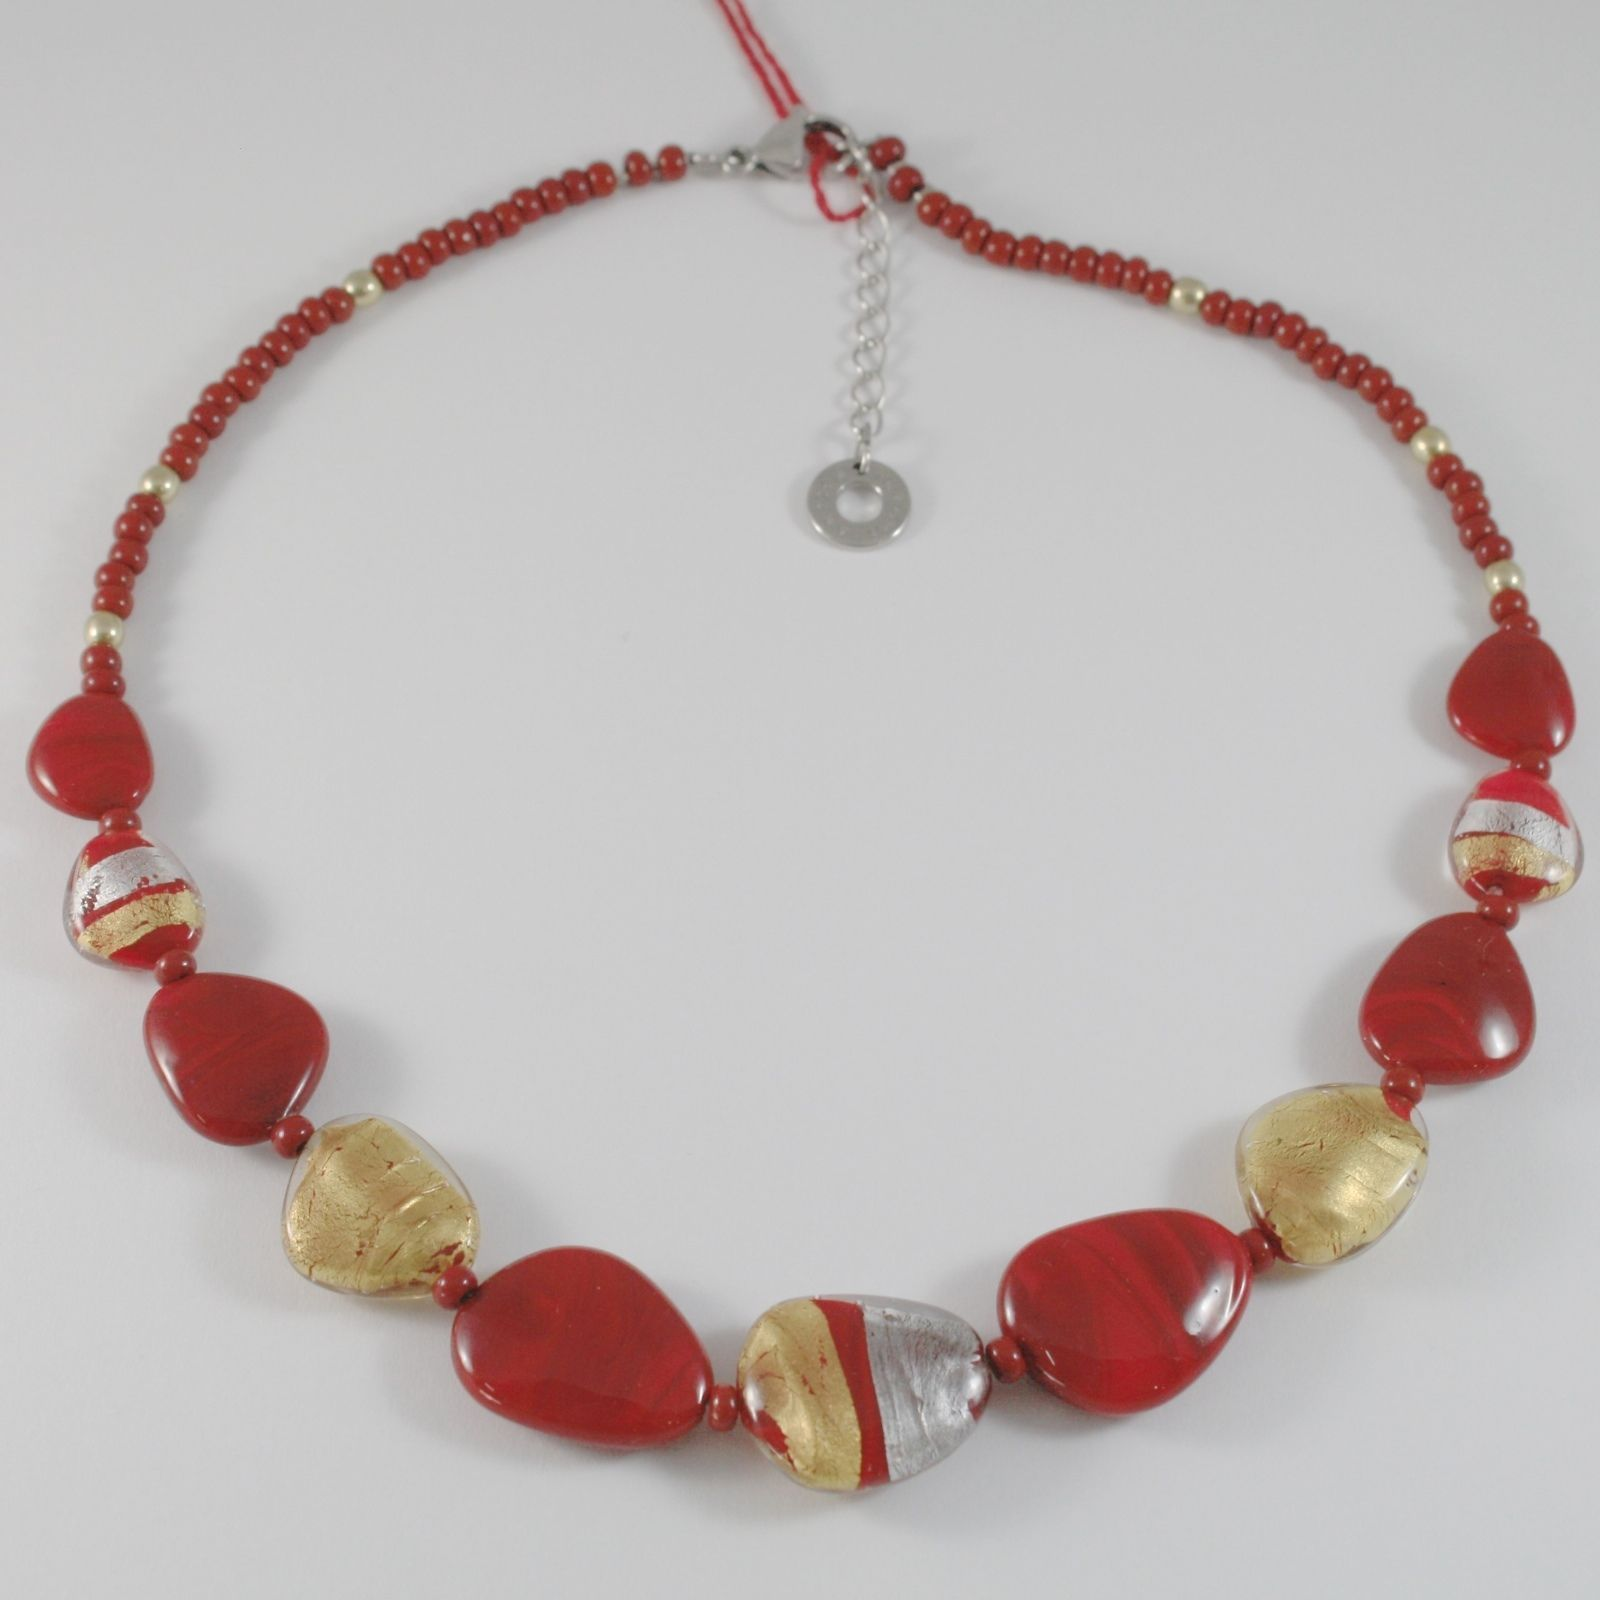 NECKLACE ANTICA MURRINA VENEZIA WITH MURANO GLASS RED YELLOW GRAY COA14A11